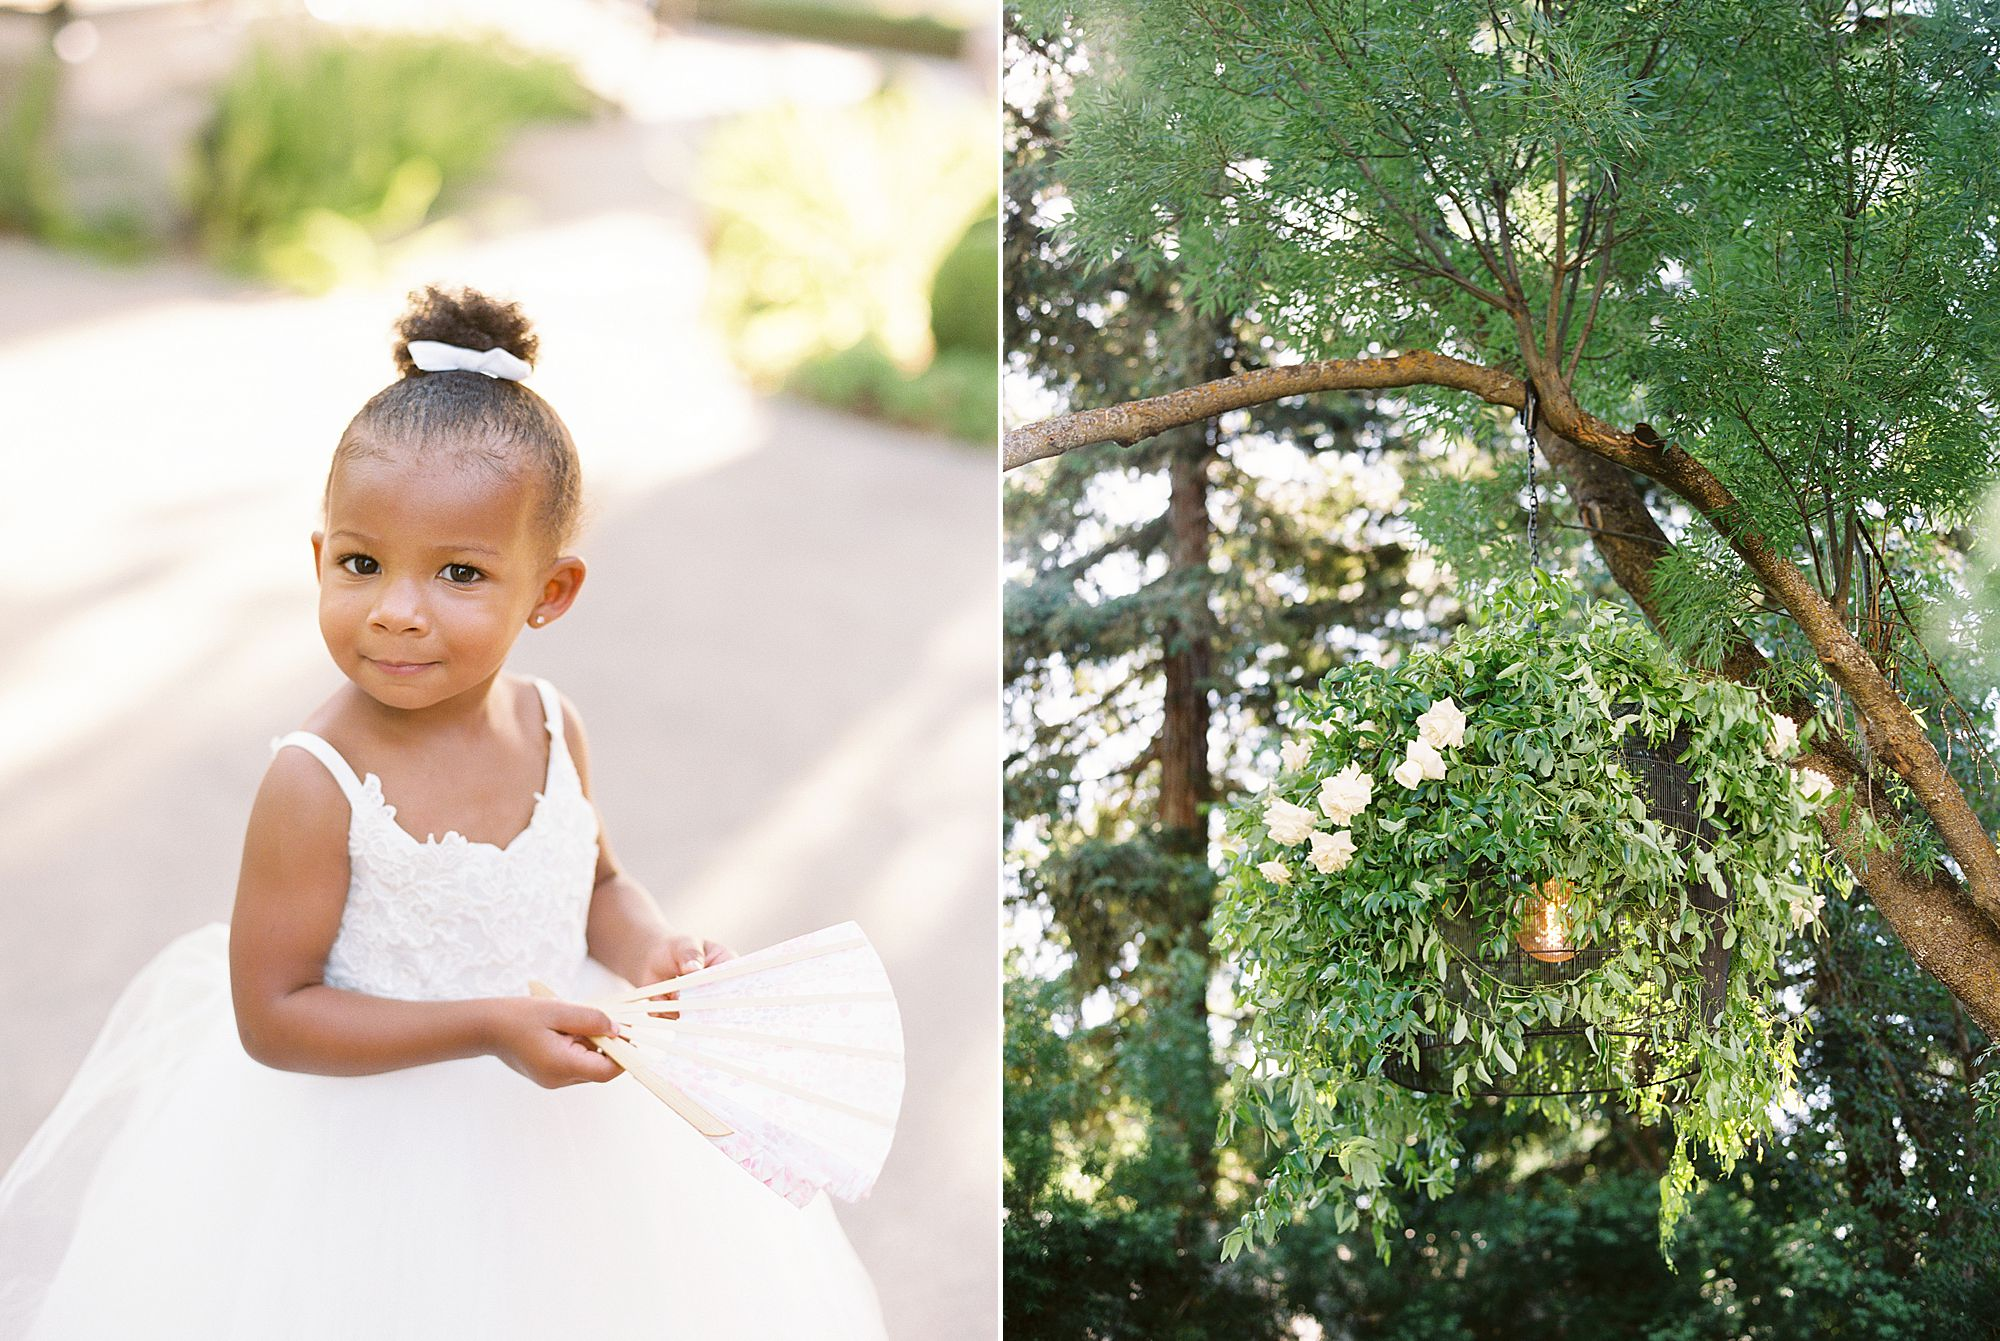 Park Winters Micro-Wedding Inspiration on Style Me Pretty - Stephanie Teague Events - Ashley Baumgartner - Park Winters Wedding - Black Tie Wedding - Micro-Wedding Sacramento Photographer_0077.jpg